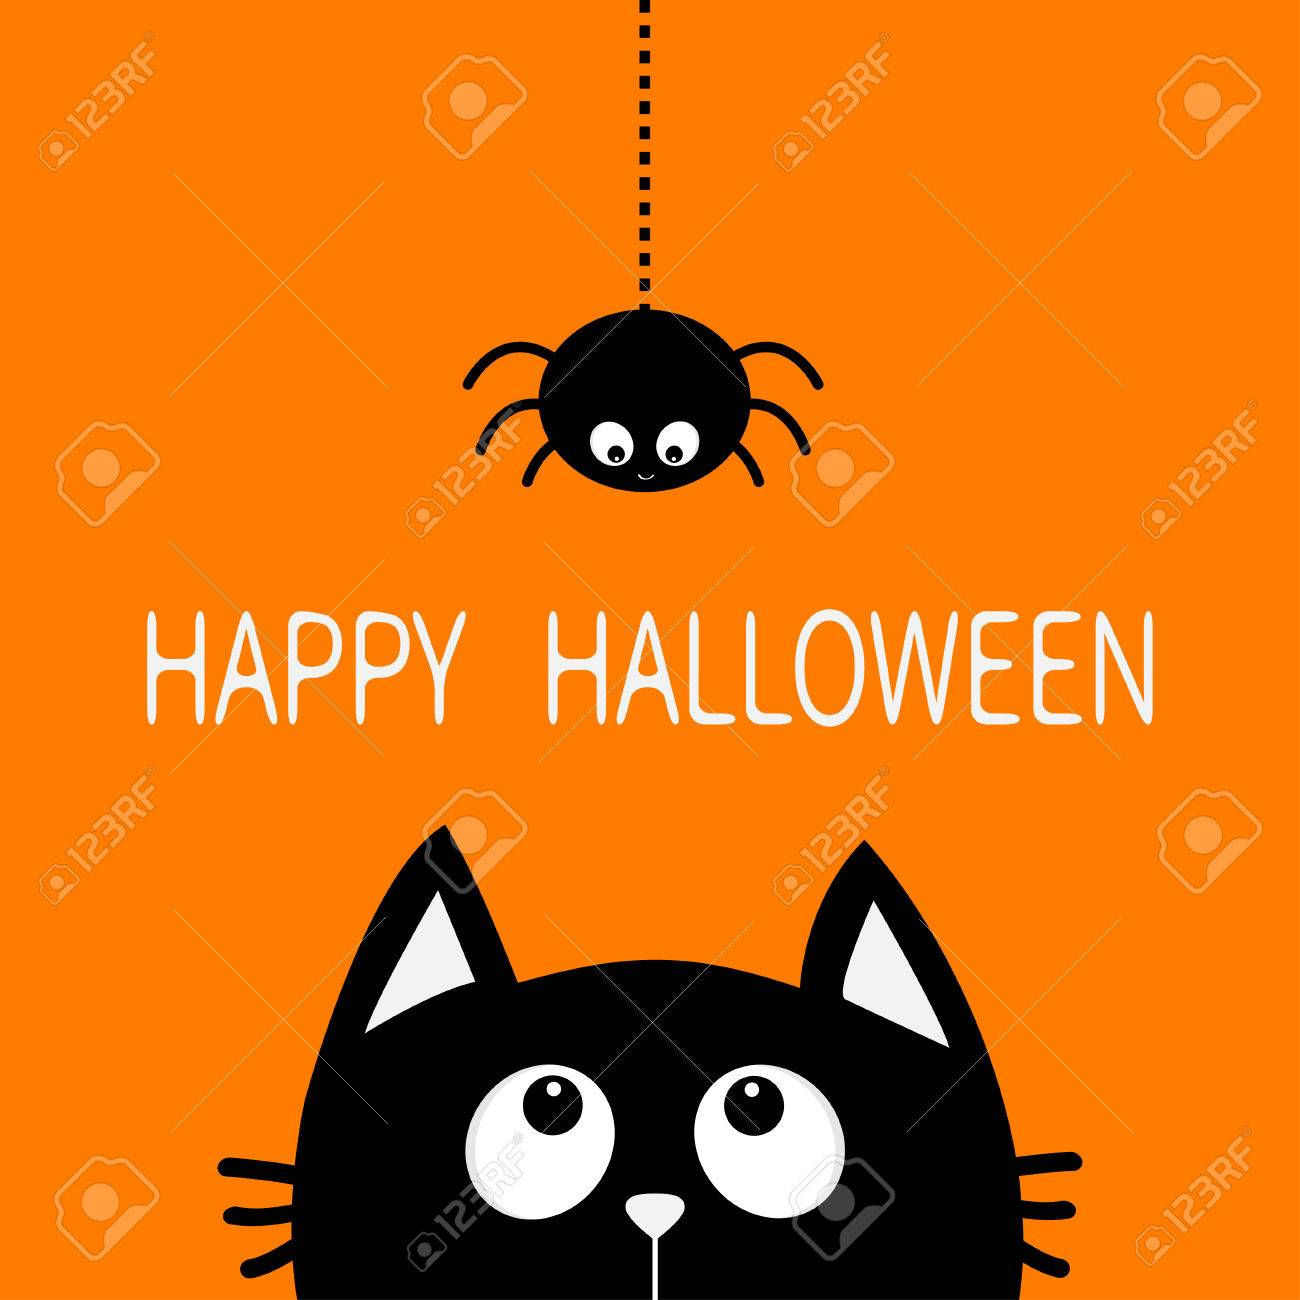 Happy Halloween Black Cat Face Head Silhouette Looking Up To